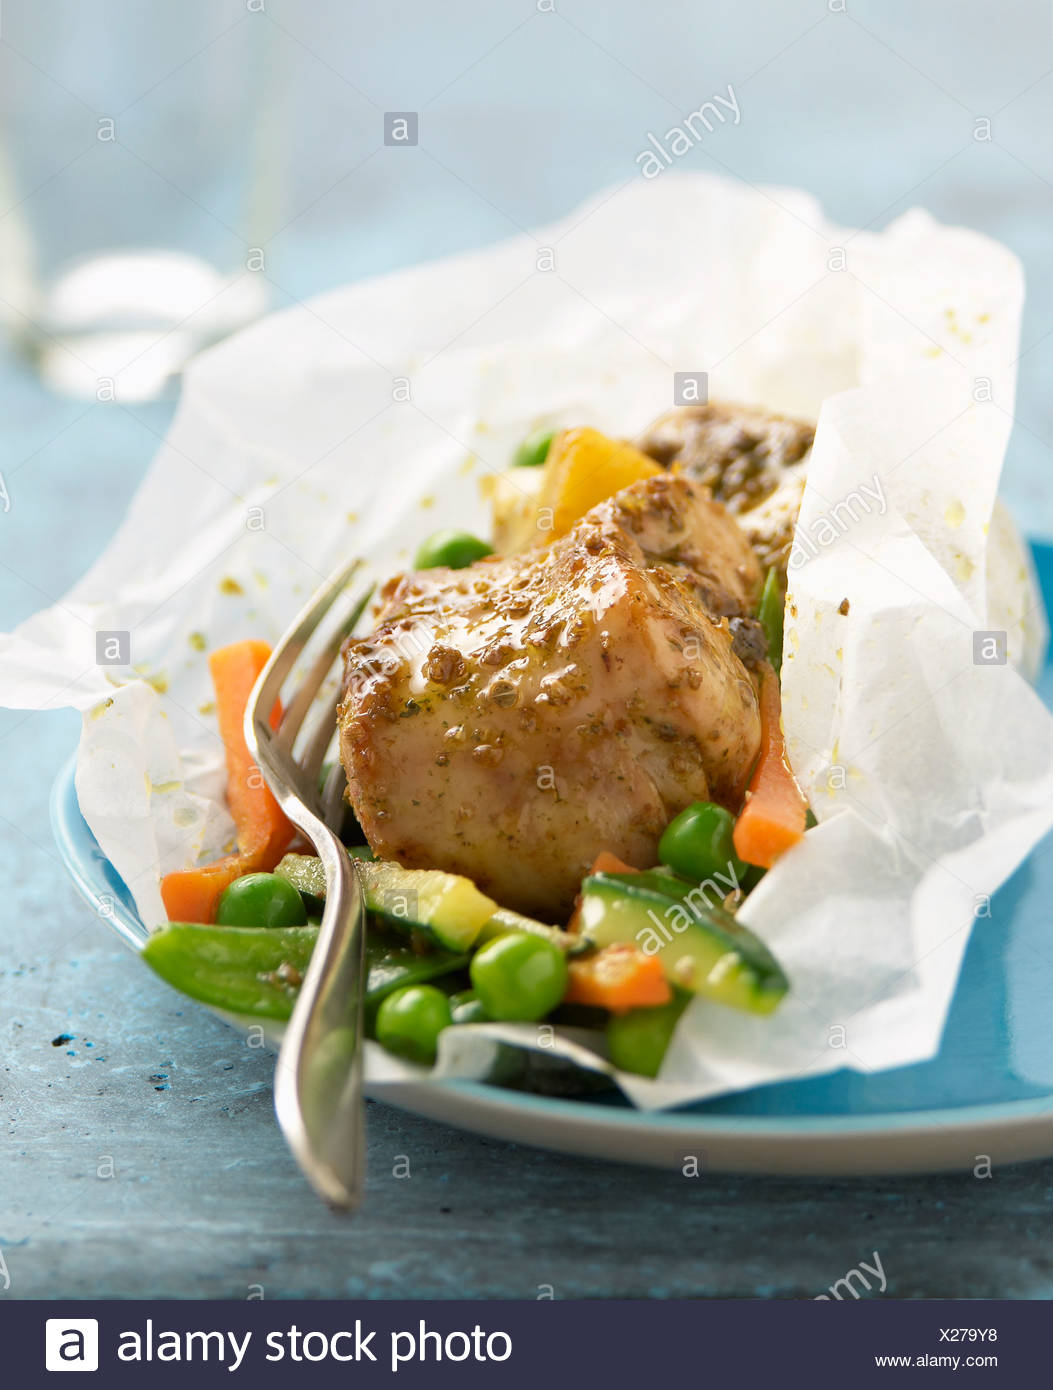 Rabbit with coriander,lemons and vegetables cooked in wax paper - Stock Image